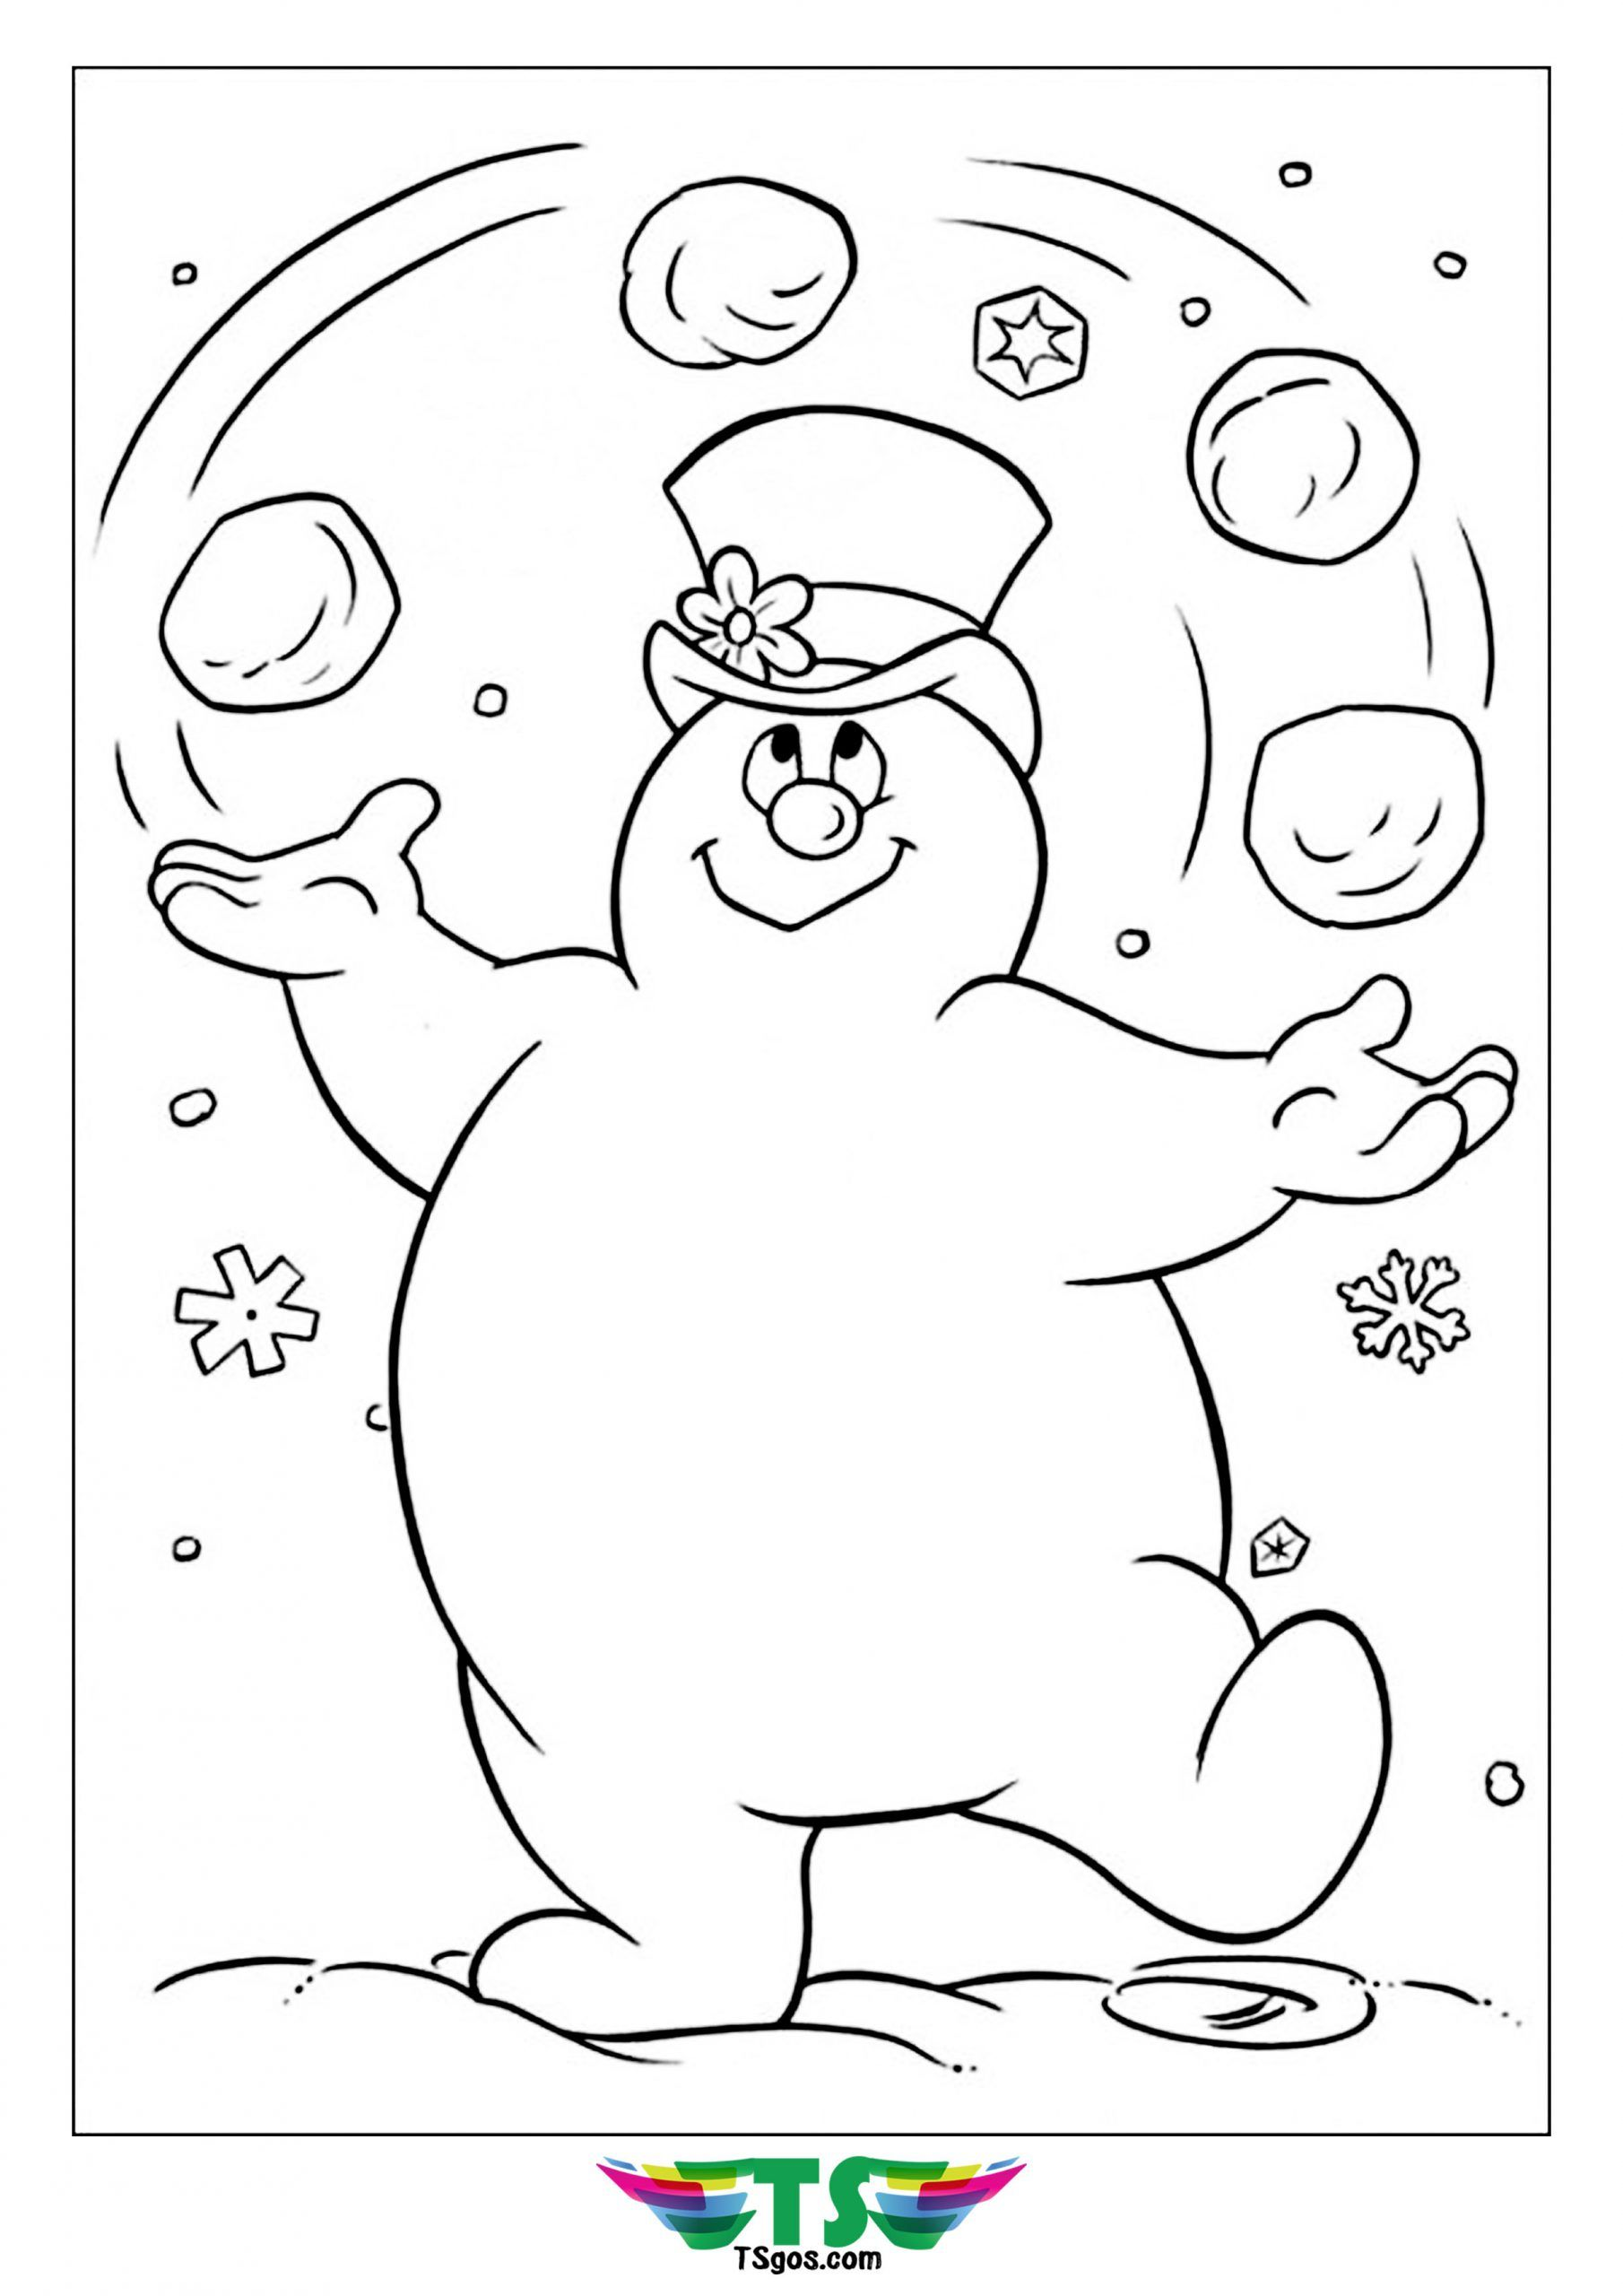 Frosty Snowman Playing Snowball Coloring Snowman Coloring Pages Christmas Coloring Sheets Free Coloring Pages